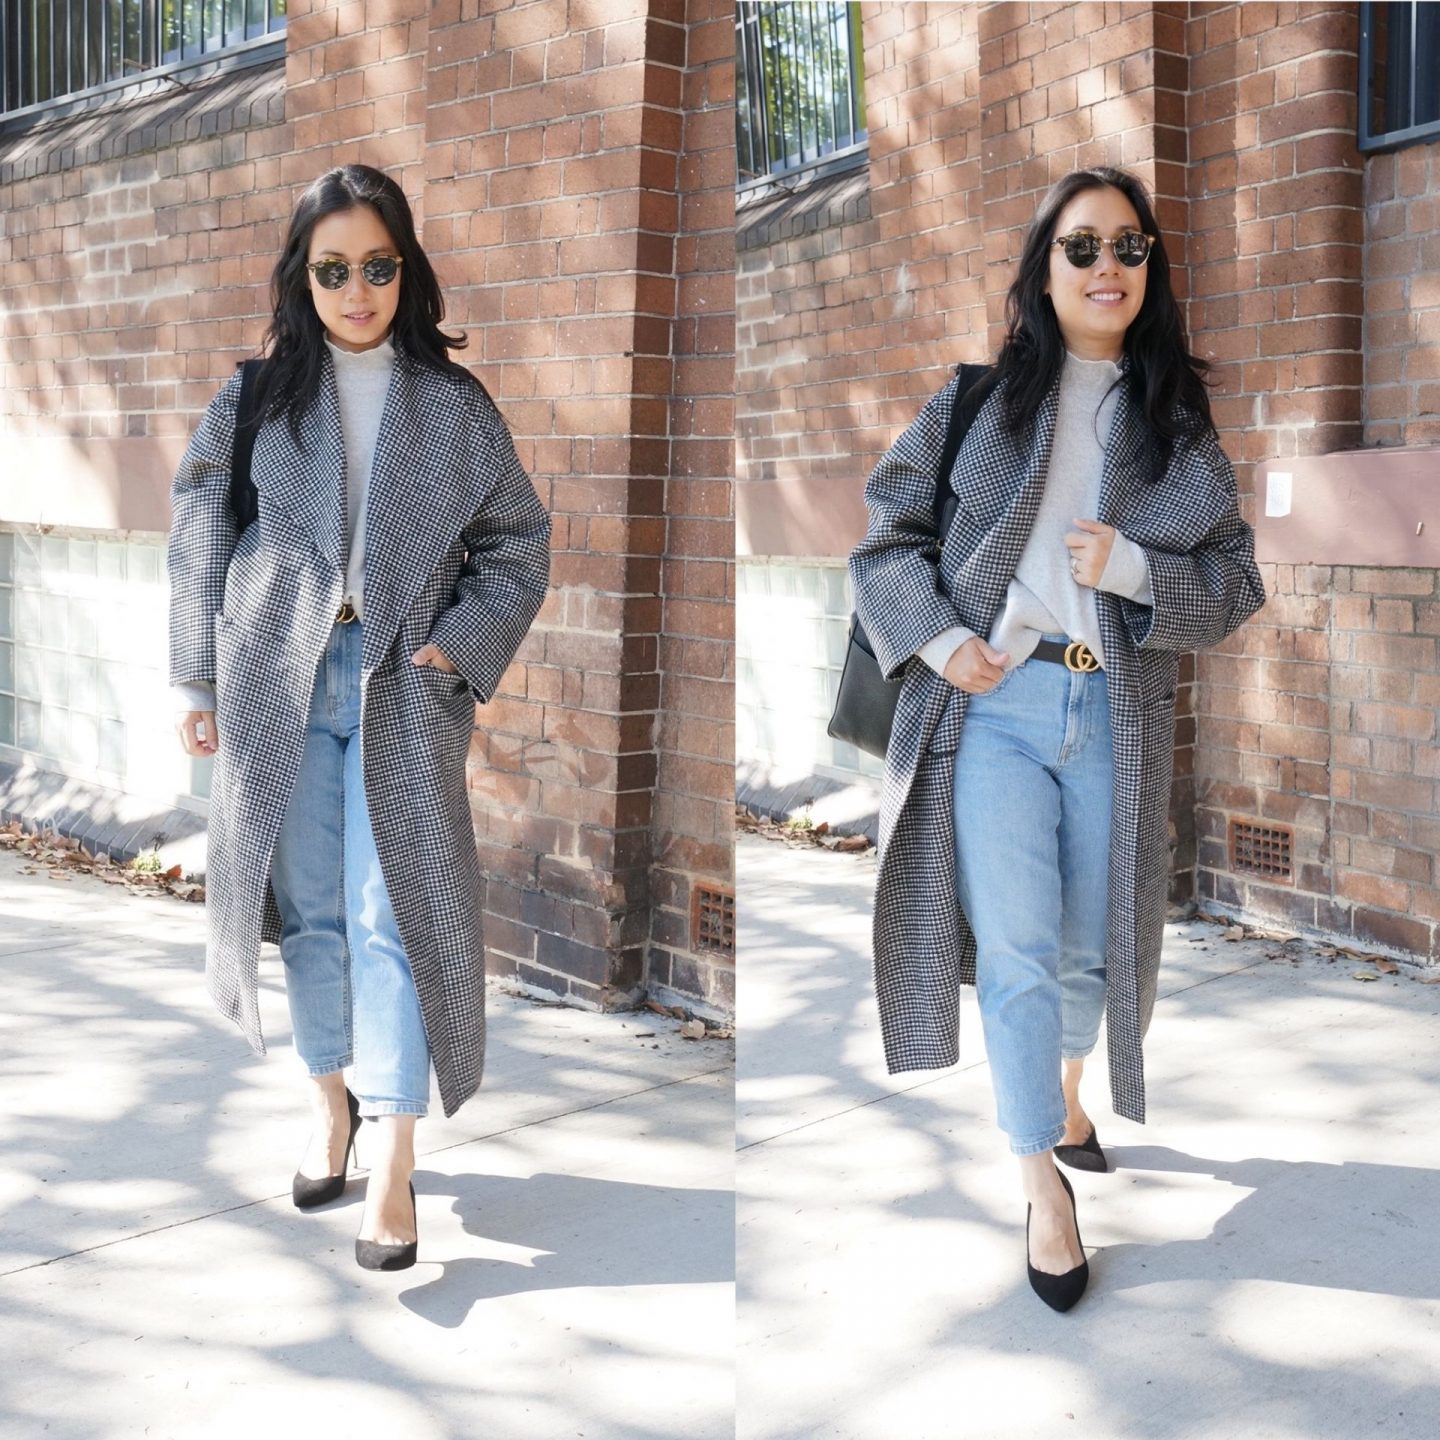 collage of photos of woman wearing toteme houndstooth annecy coat in blog post sharing first impressions